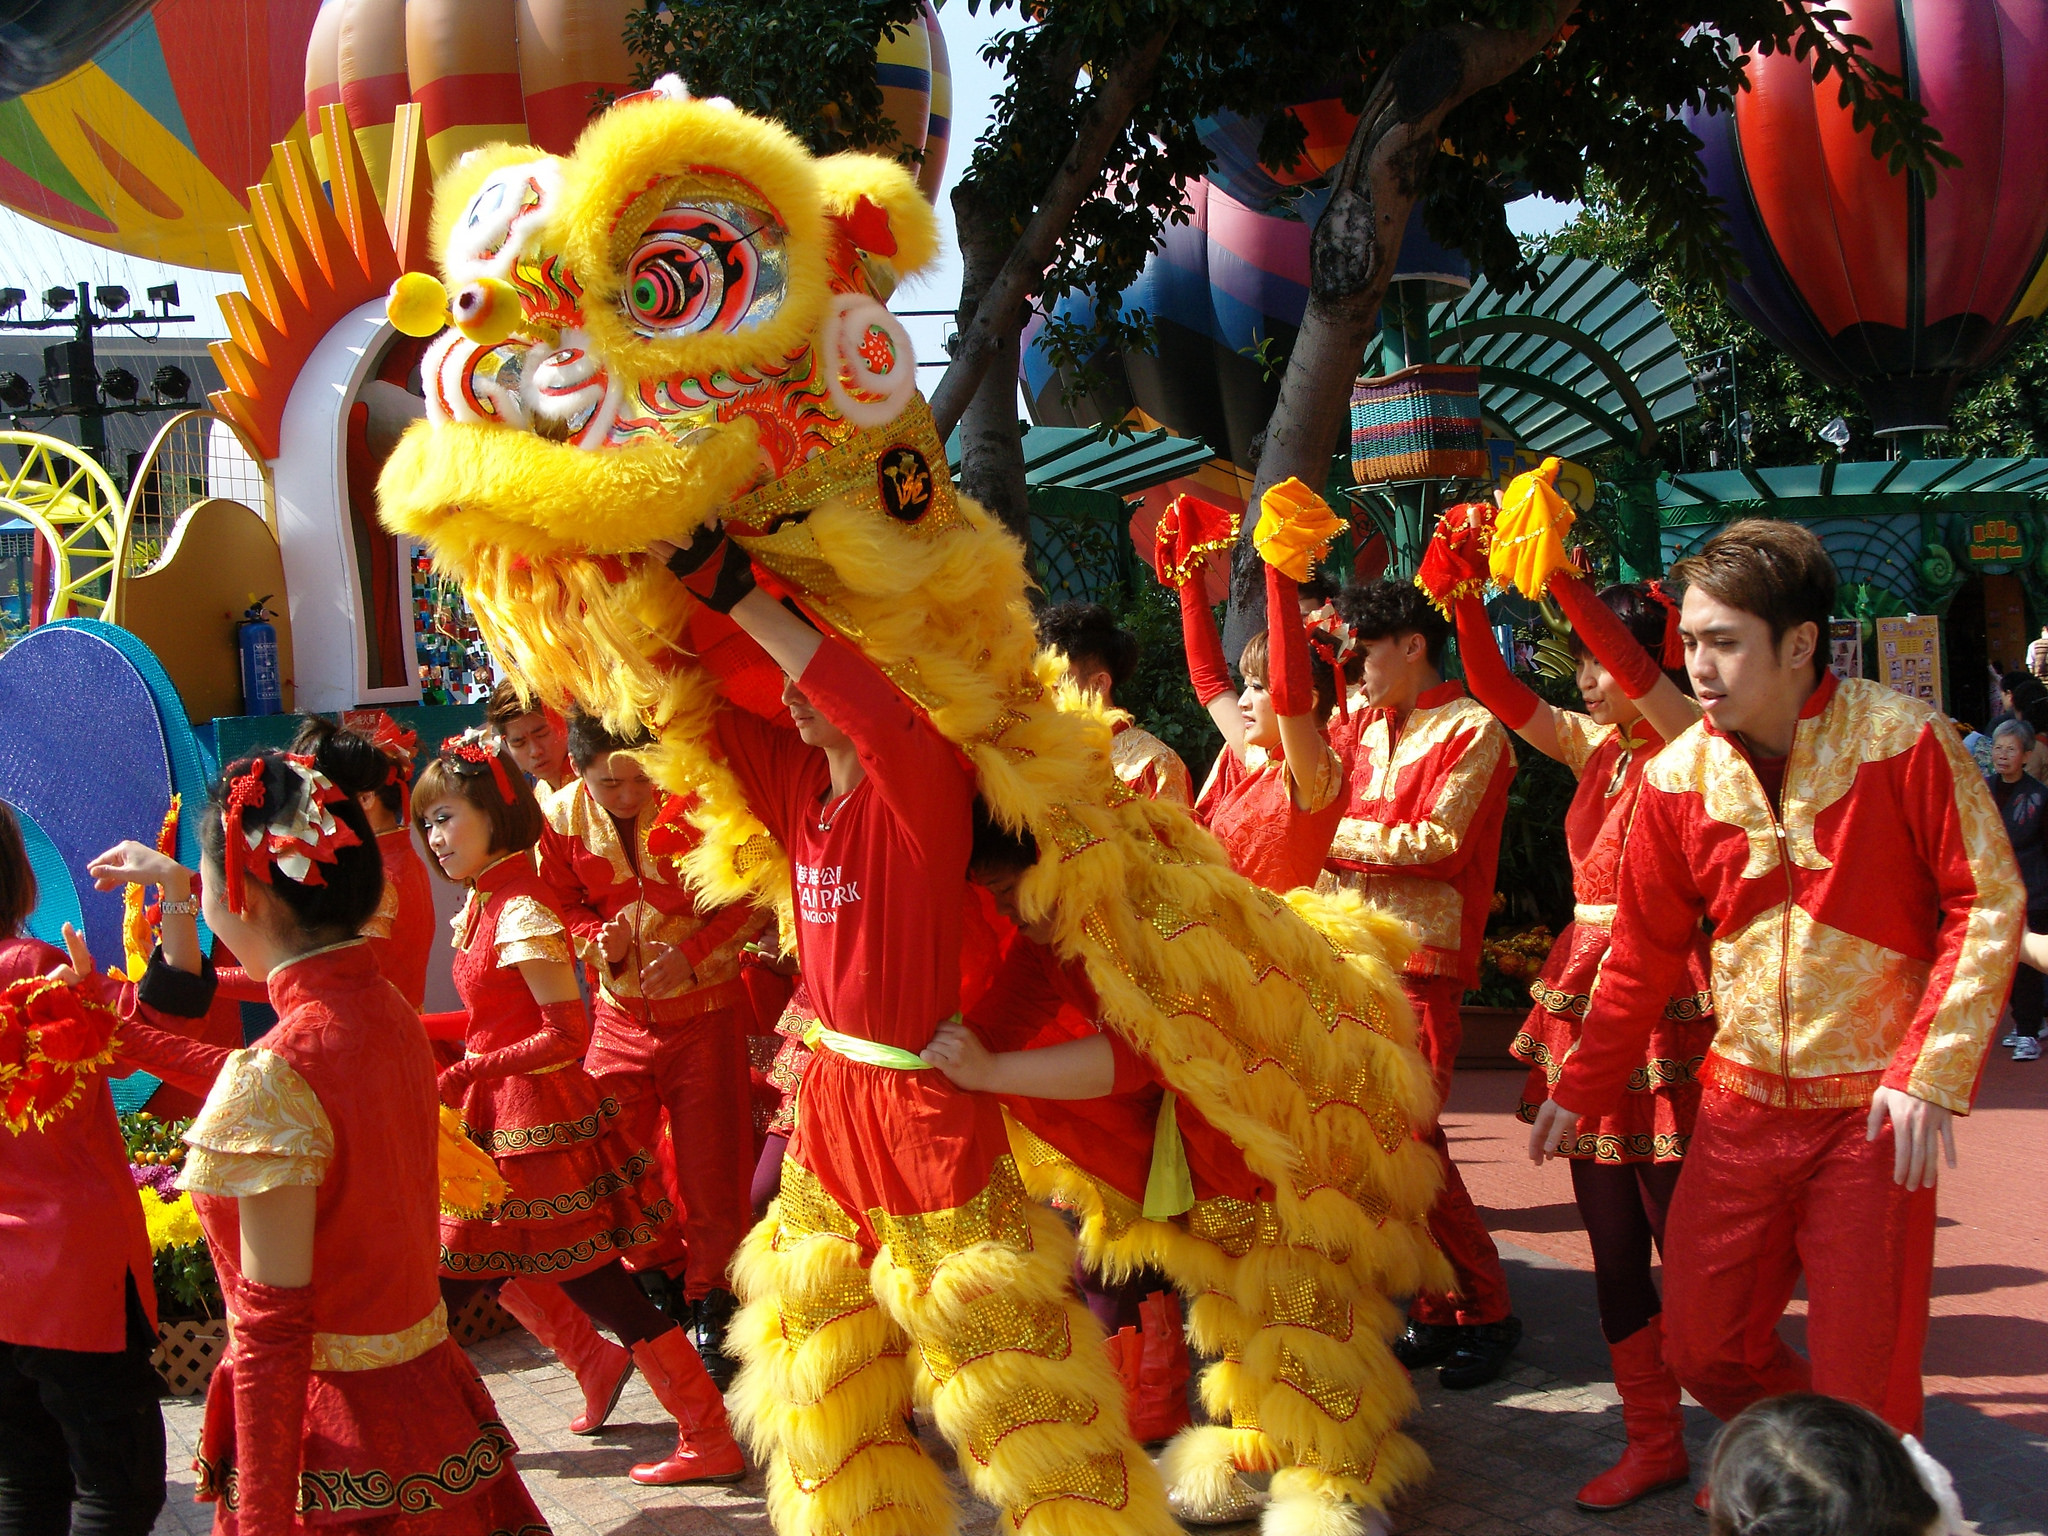 A lion dance in progress | © shankar s./Flickr